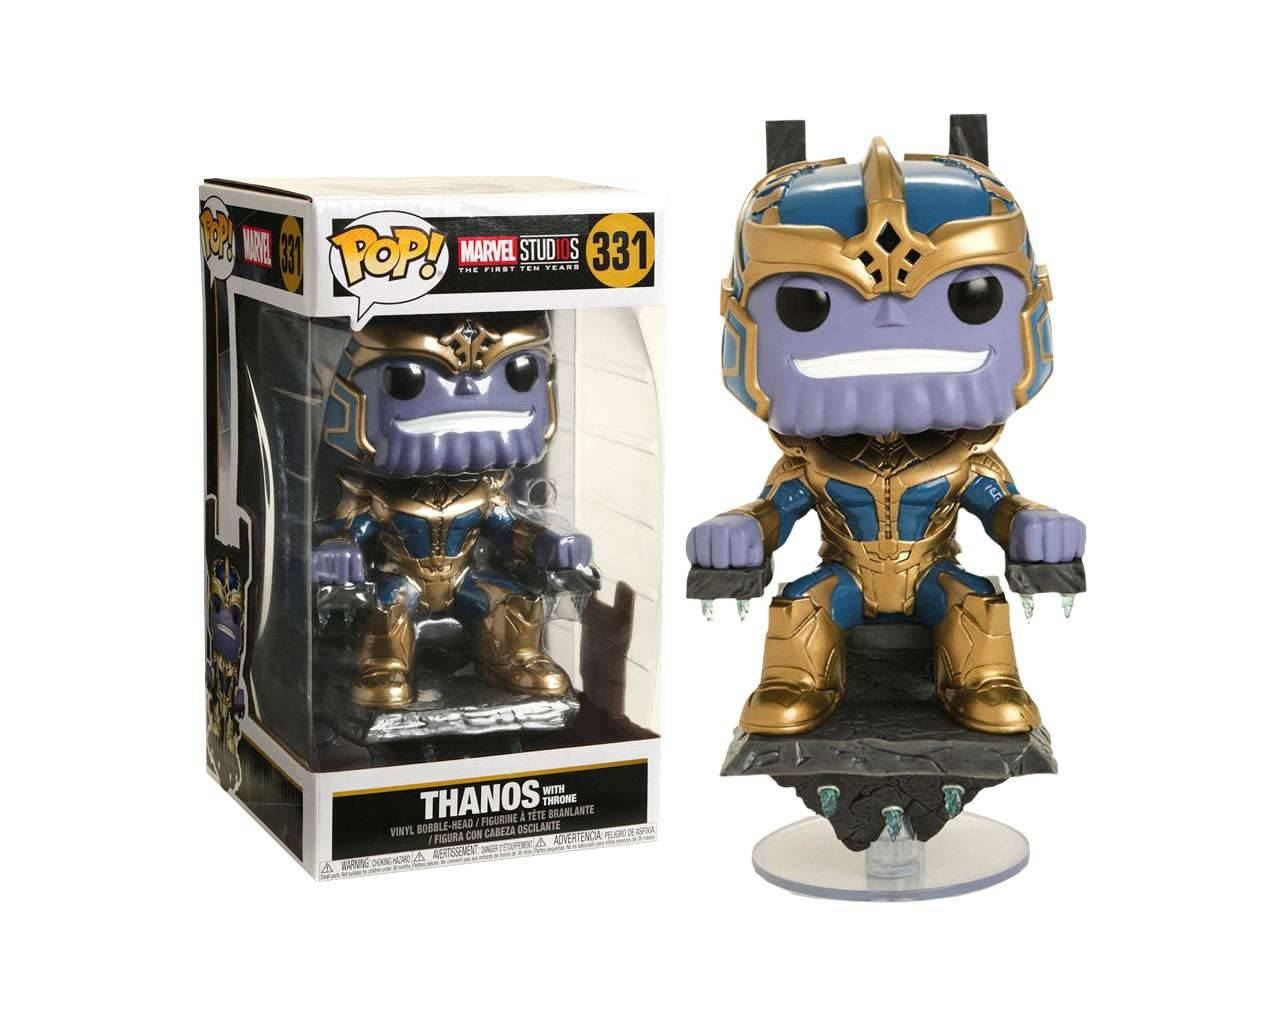 Thanos (with throne) Pop! Vinyl